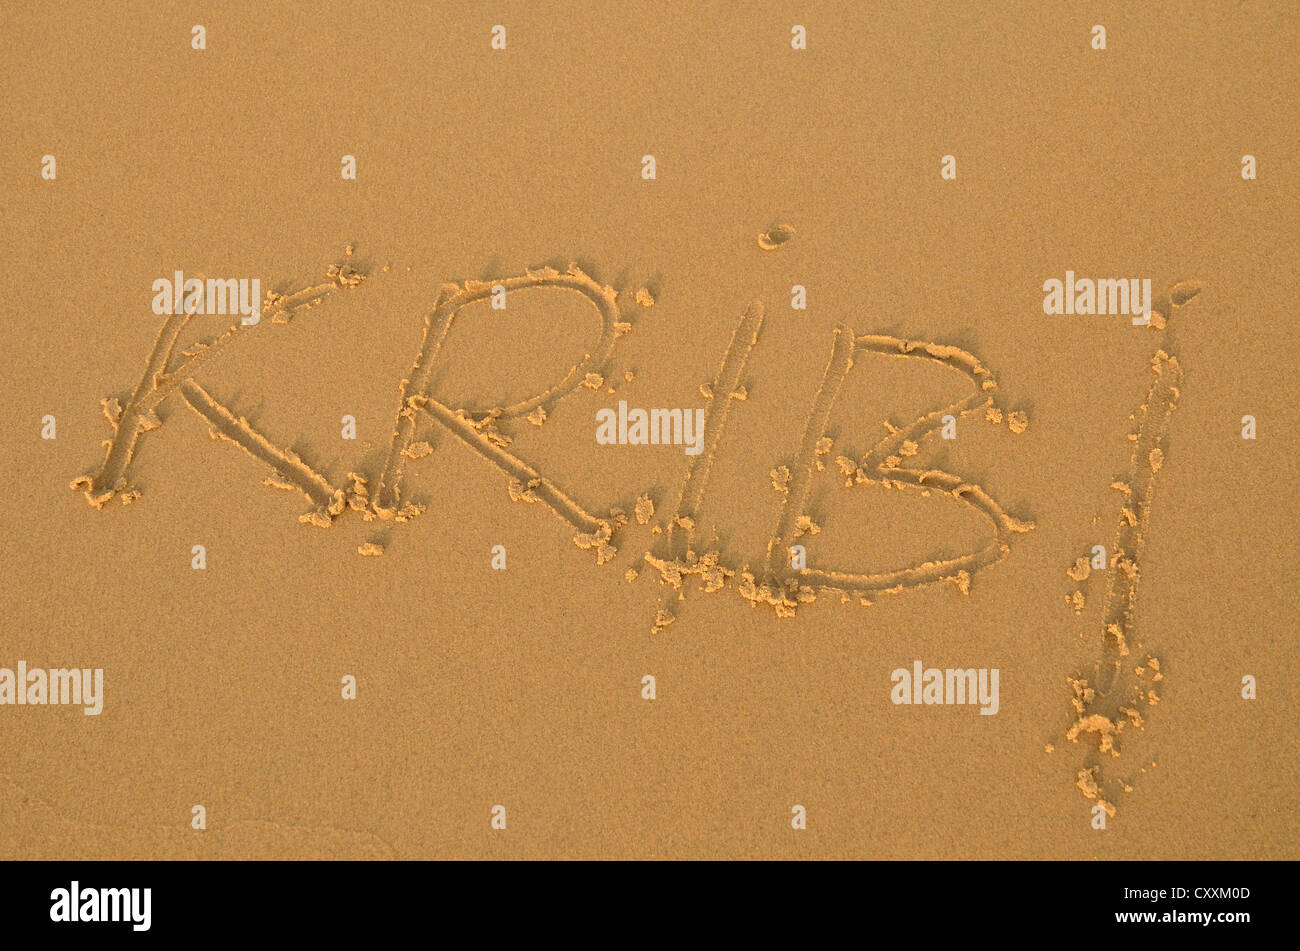 Kribi written in the sand at a beach near Kribi, Cameroon, Central Africa, Africa - Stock Image